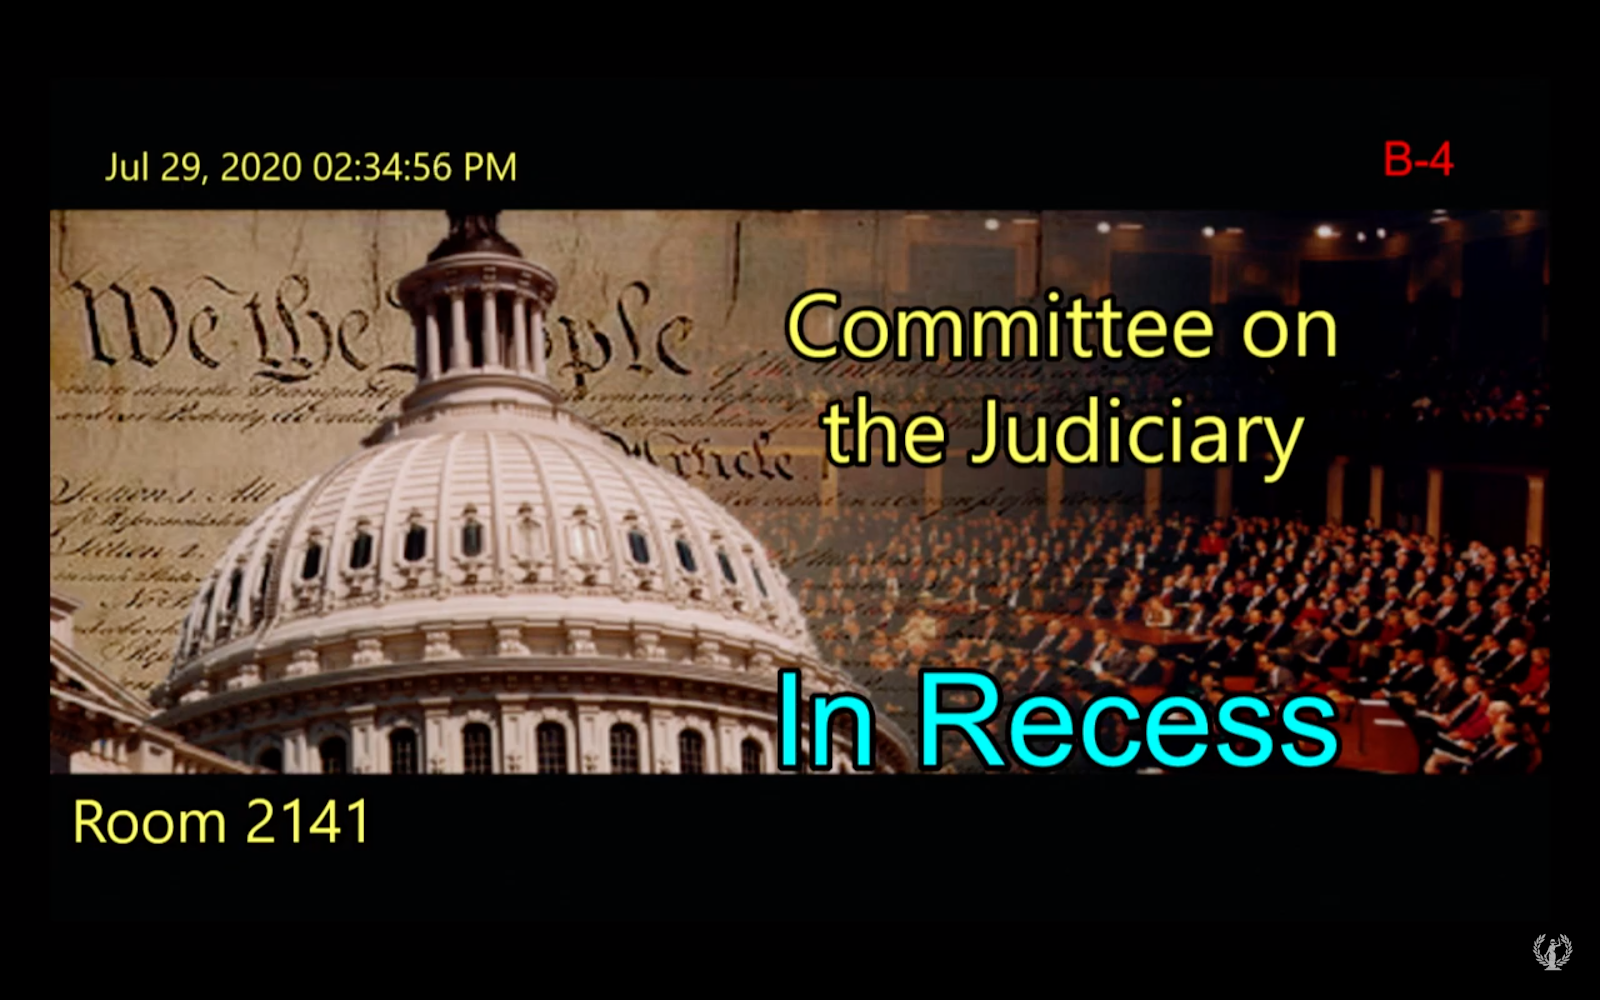 A crudely edited graphic announces a recess in the antitrust committee hearing